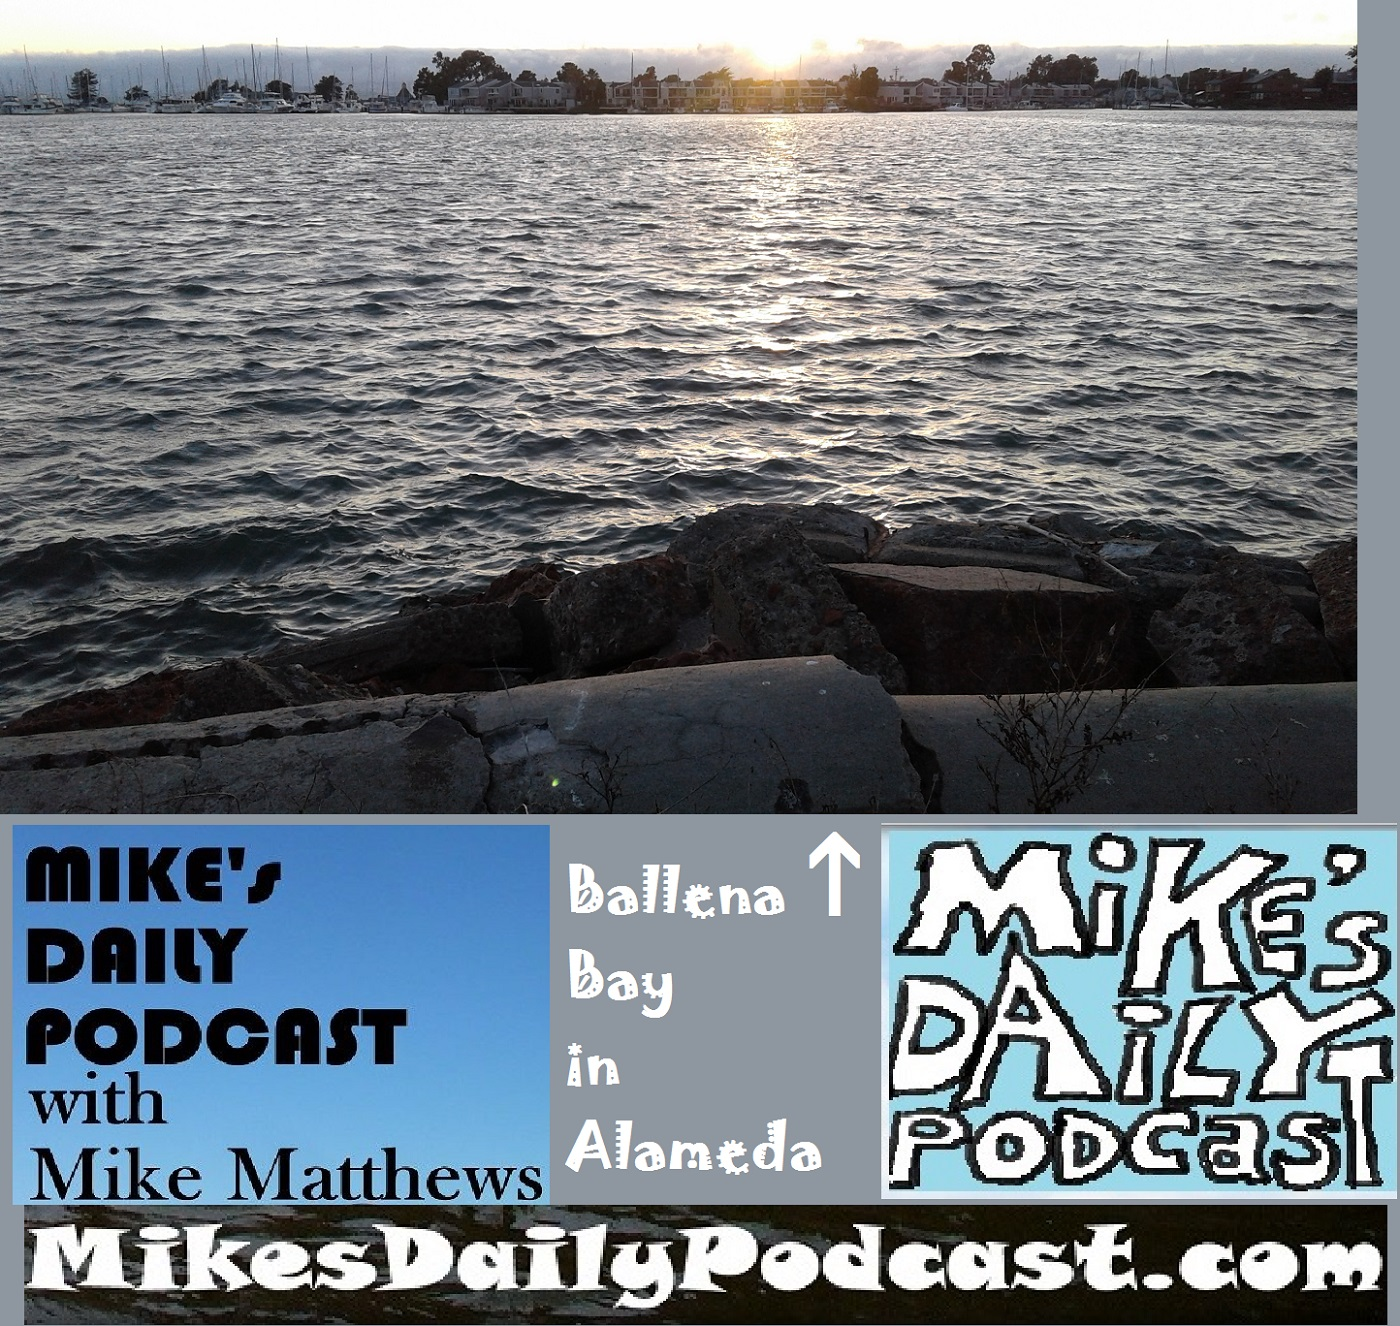 mikes-daily-podcast-1184-ballena-bay-alameda-sunset